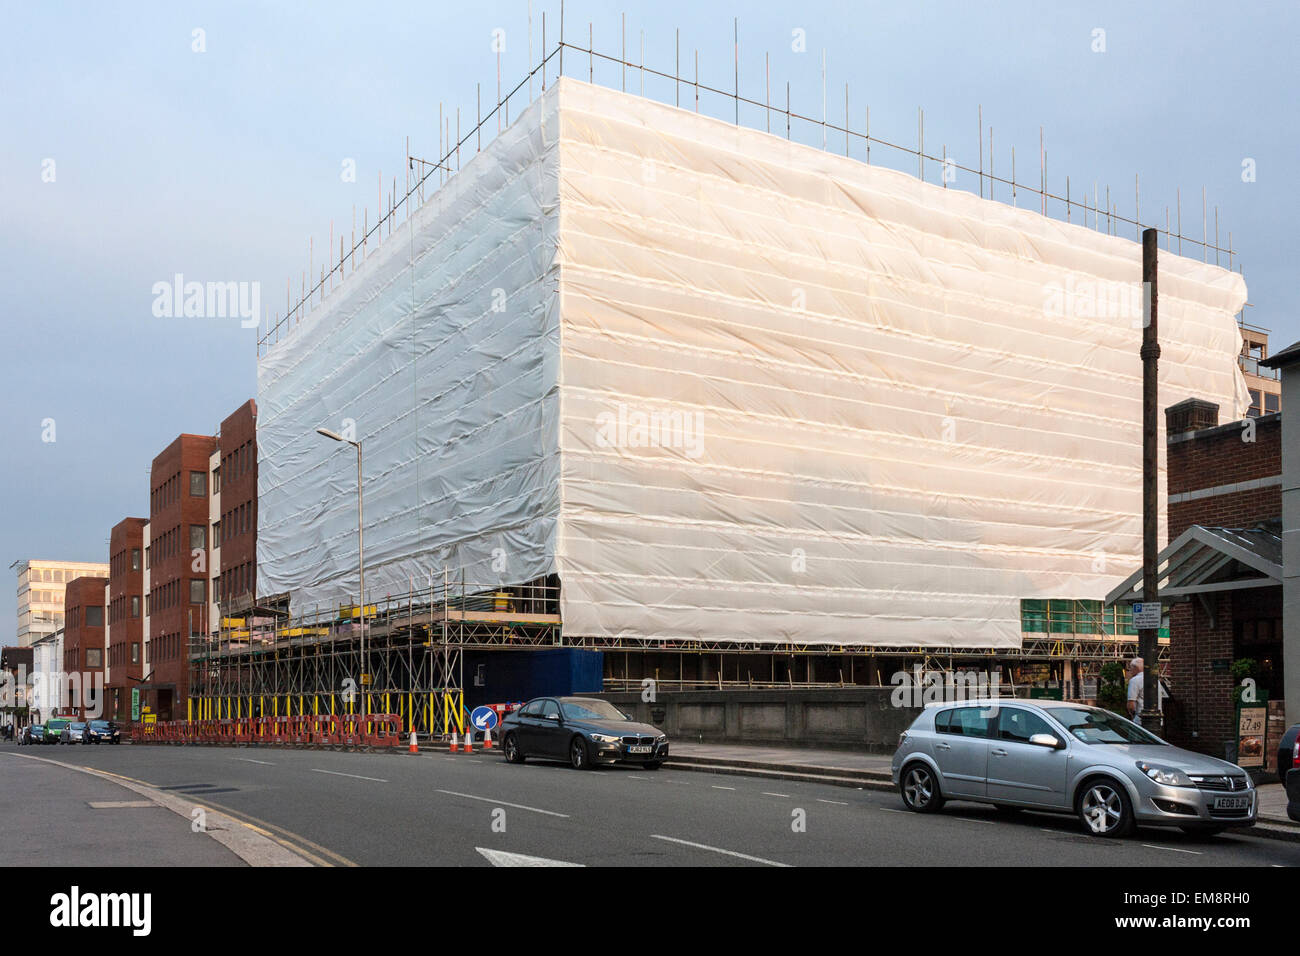 Protective plastic sheeting on scaffolding - Stock Image